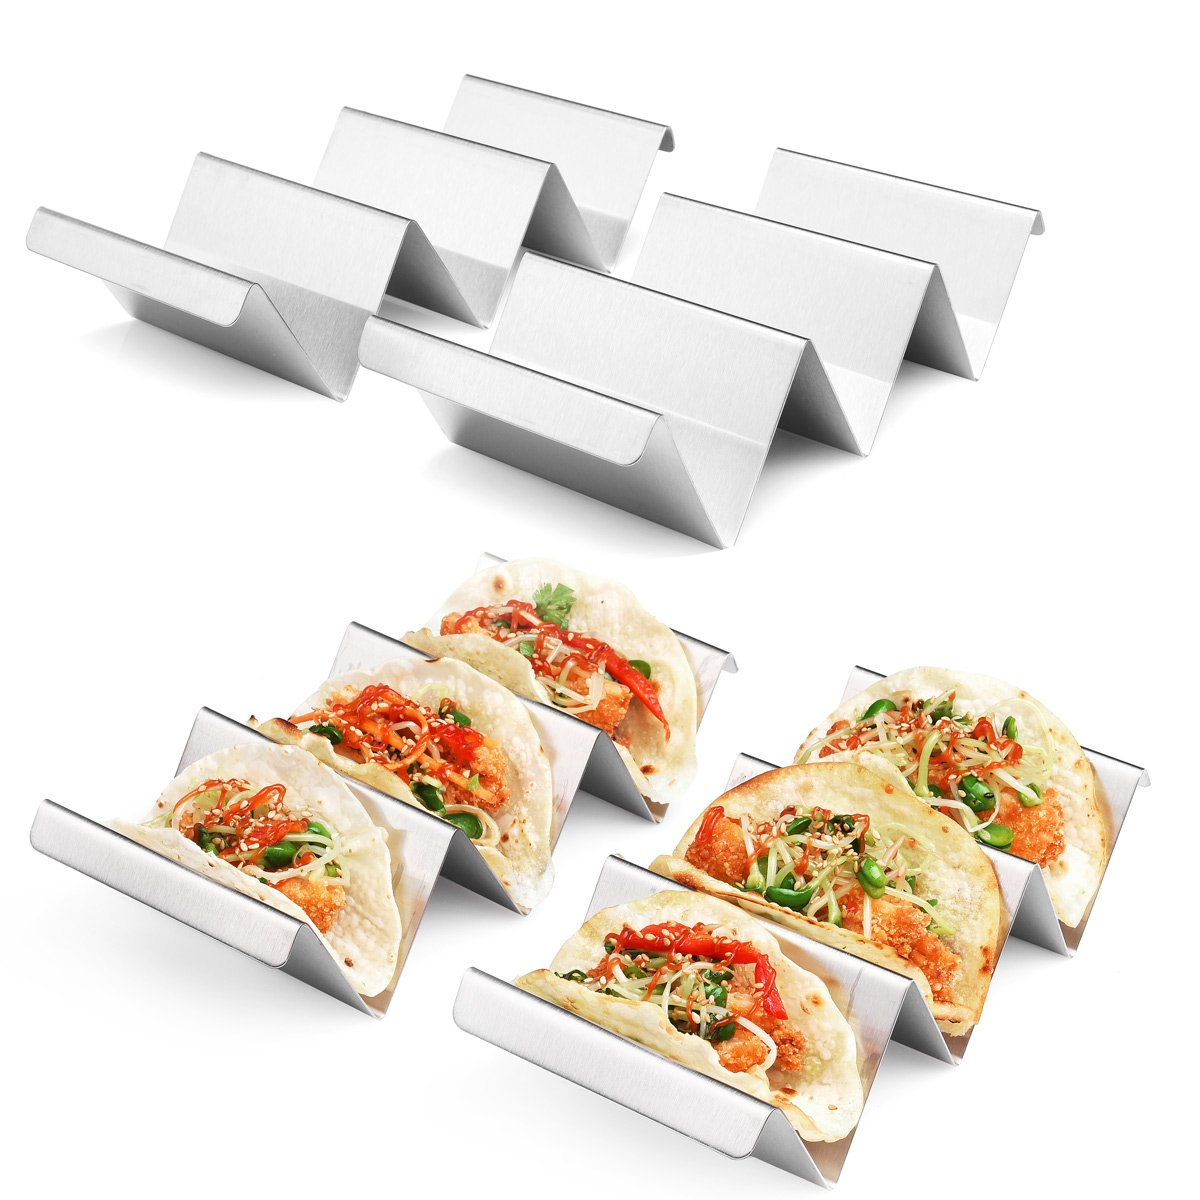 Taco Holder 4 Packs - Stainless Steel Taco Stand by Artthome